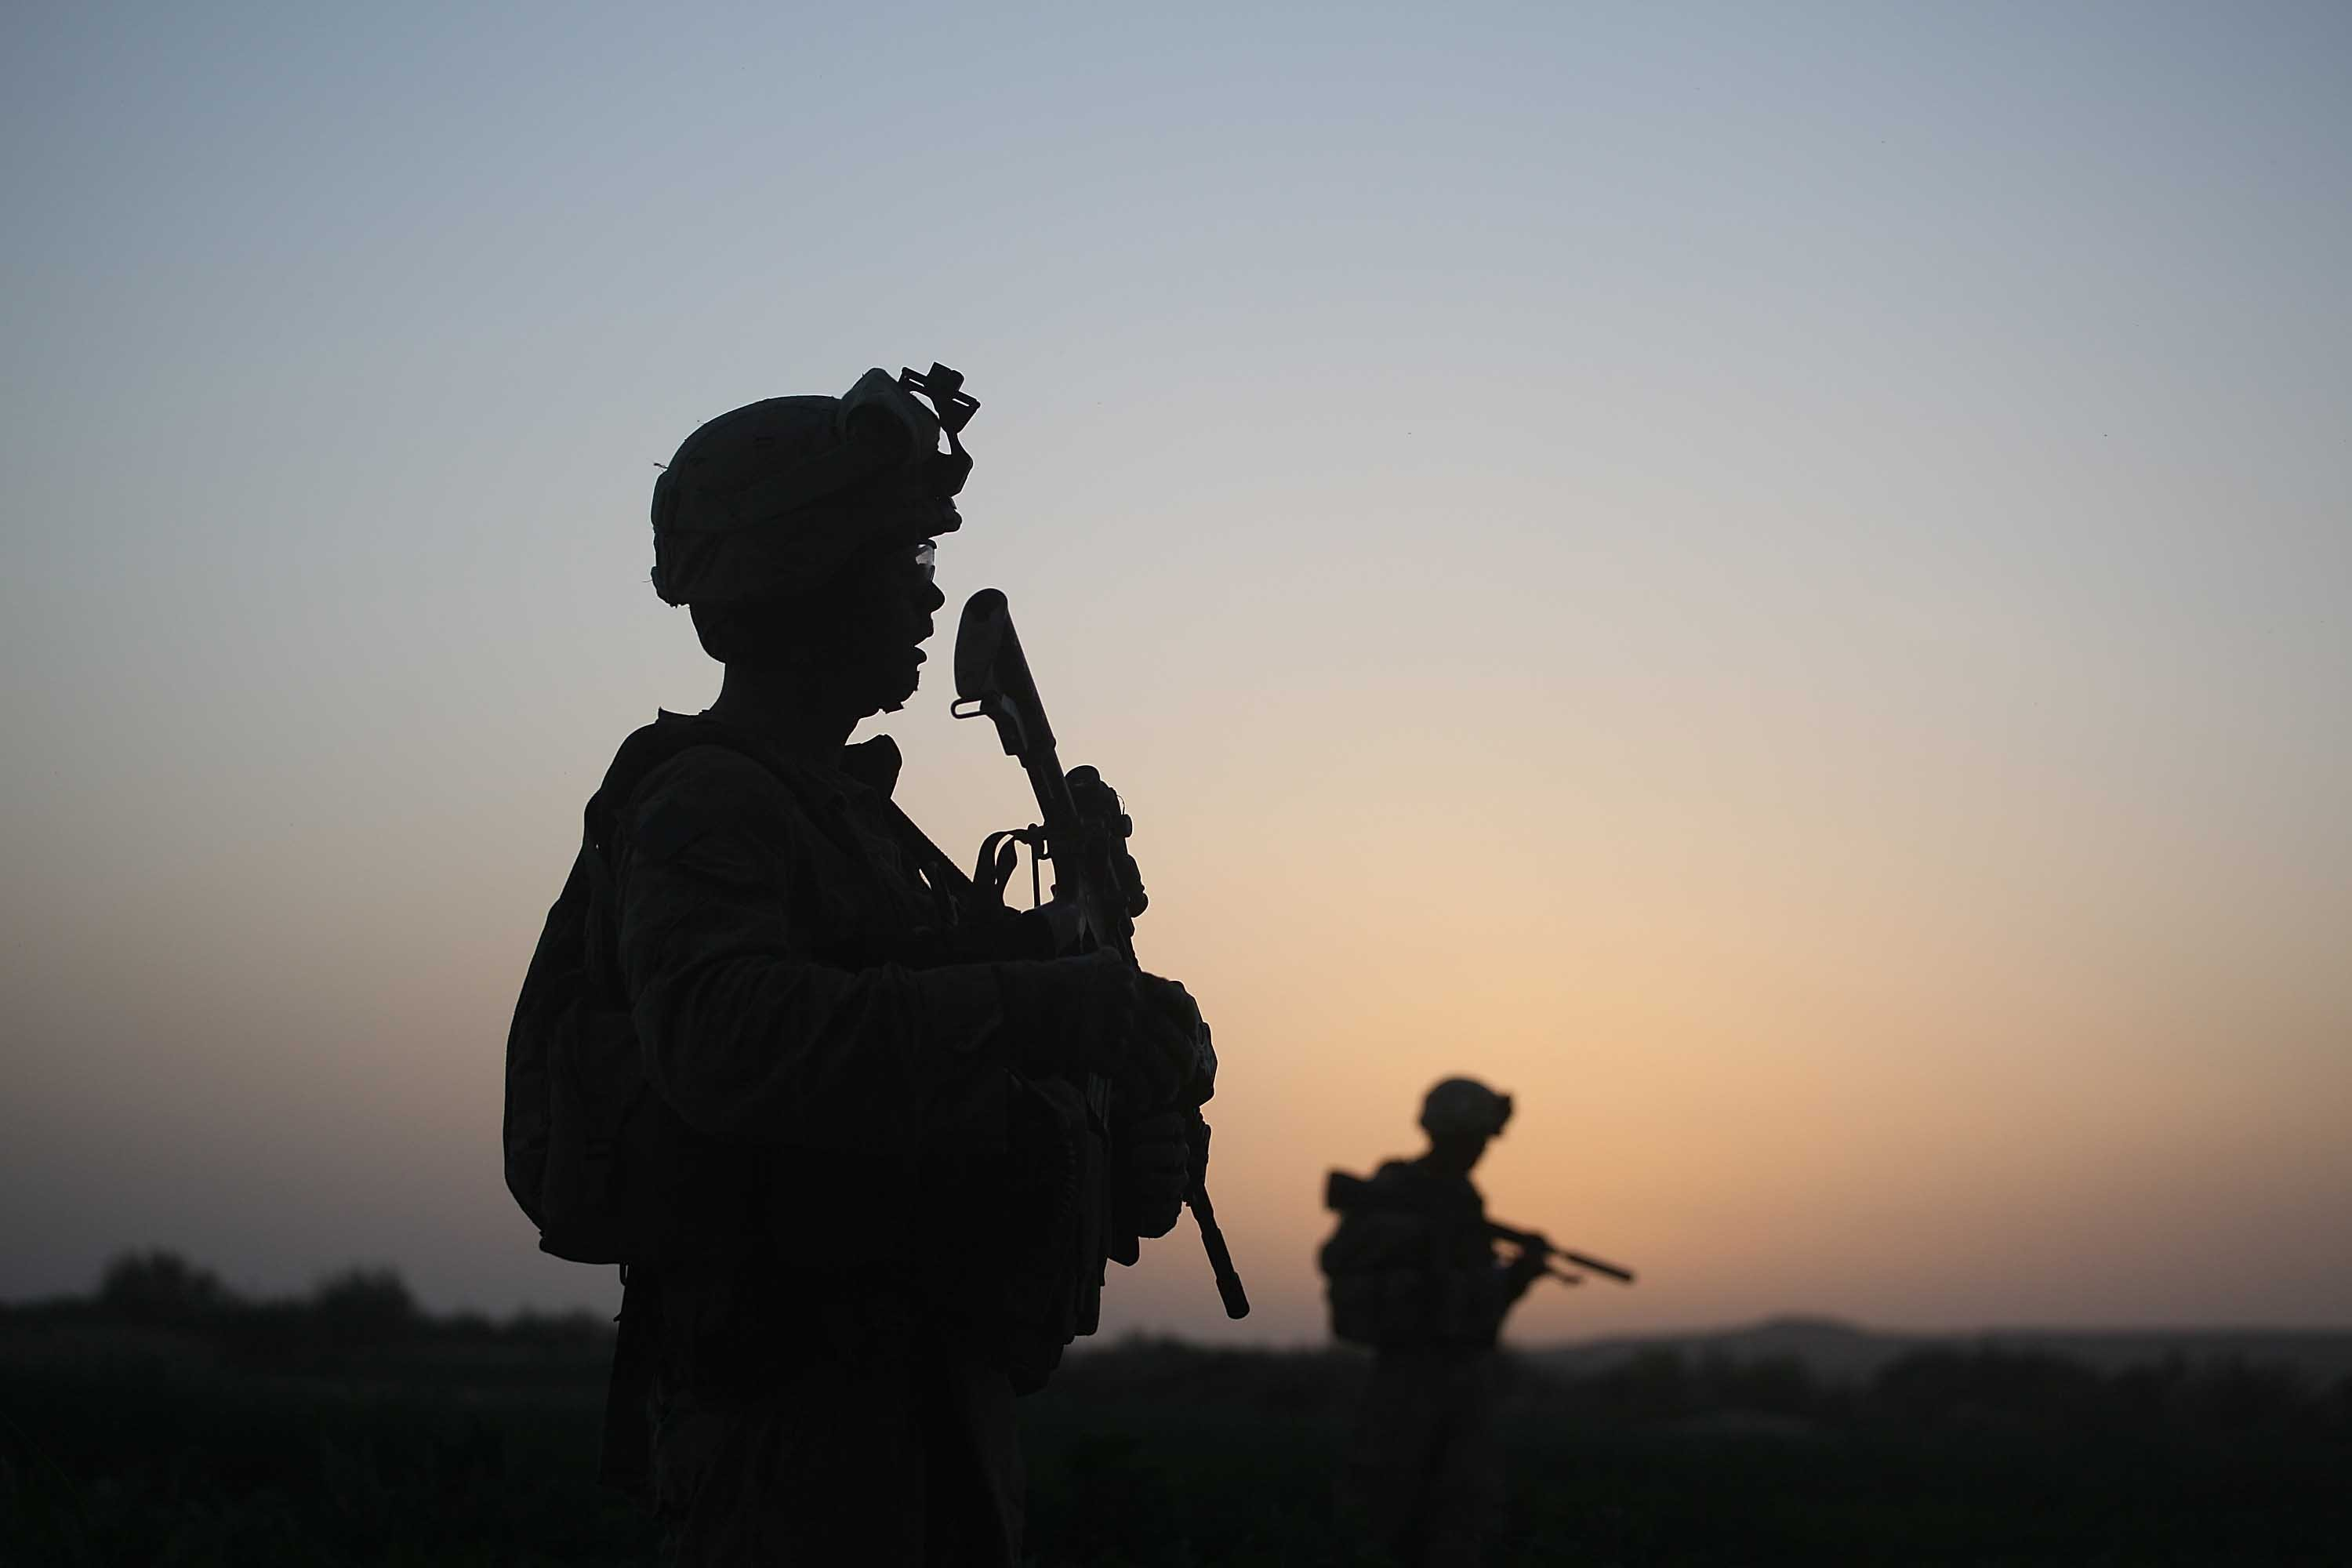 U.S. Marines with the 2nd Marine Expeditionary Brigade, RCT 2nd Battalion 8th Marines Echo Co. step off in the early morning during an operation to push out Taliban fighters on July 18, 2009 in Herati, Afghanistan | Getty Images: Photos